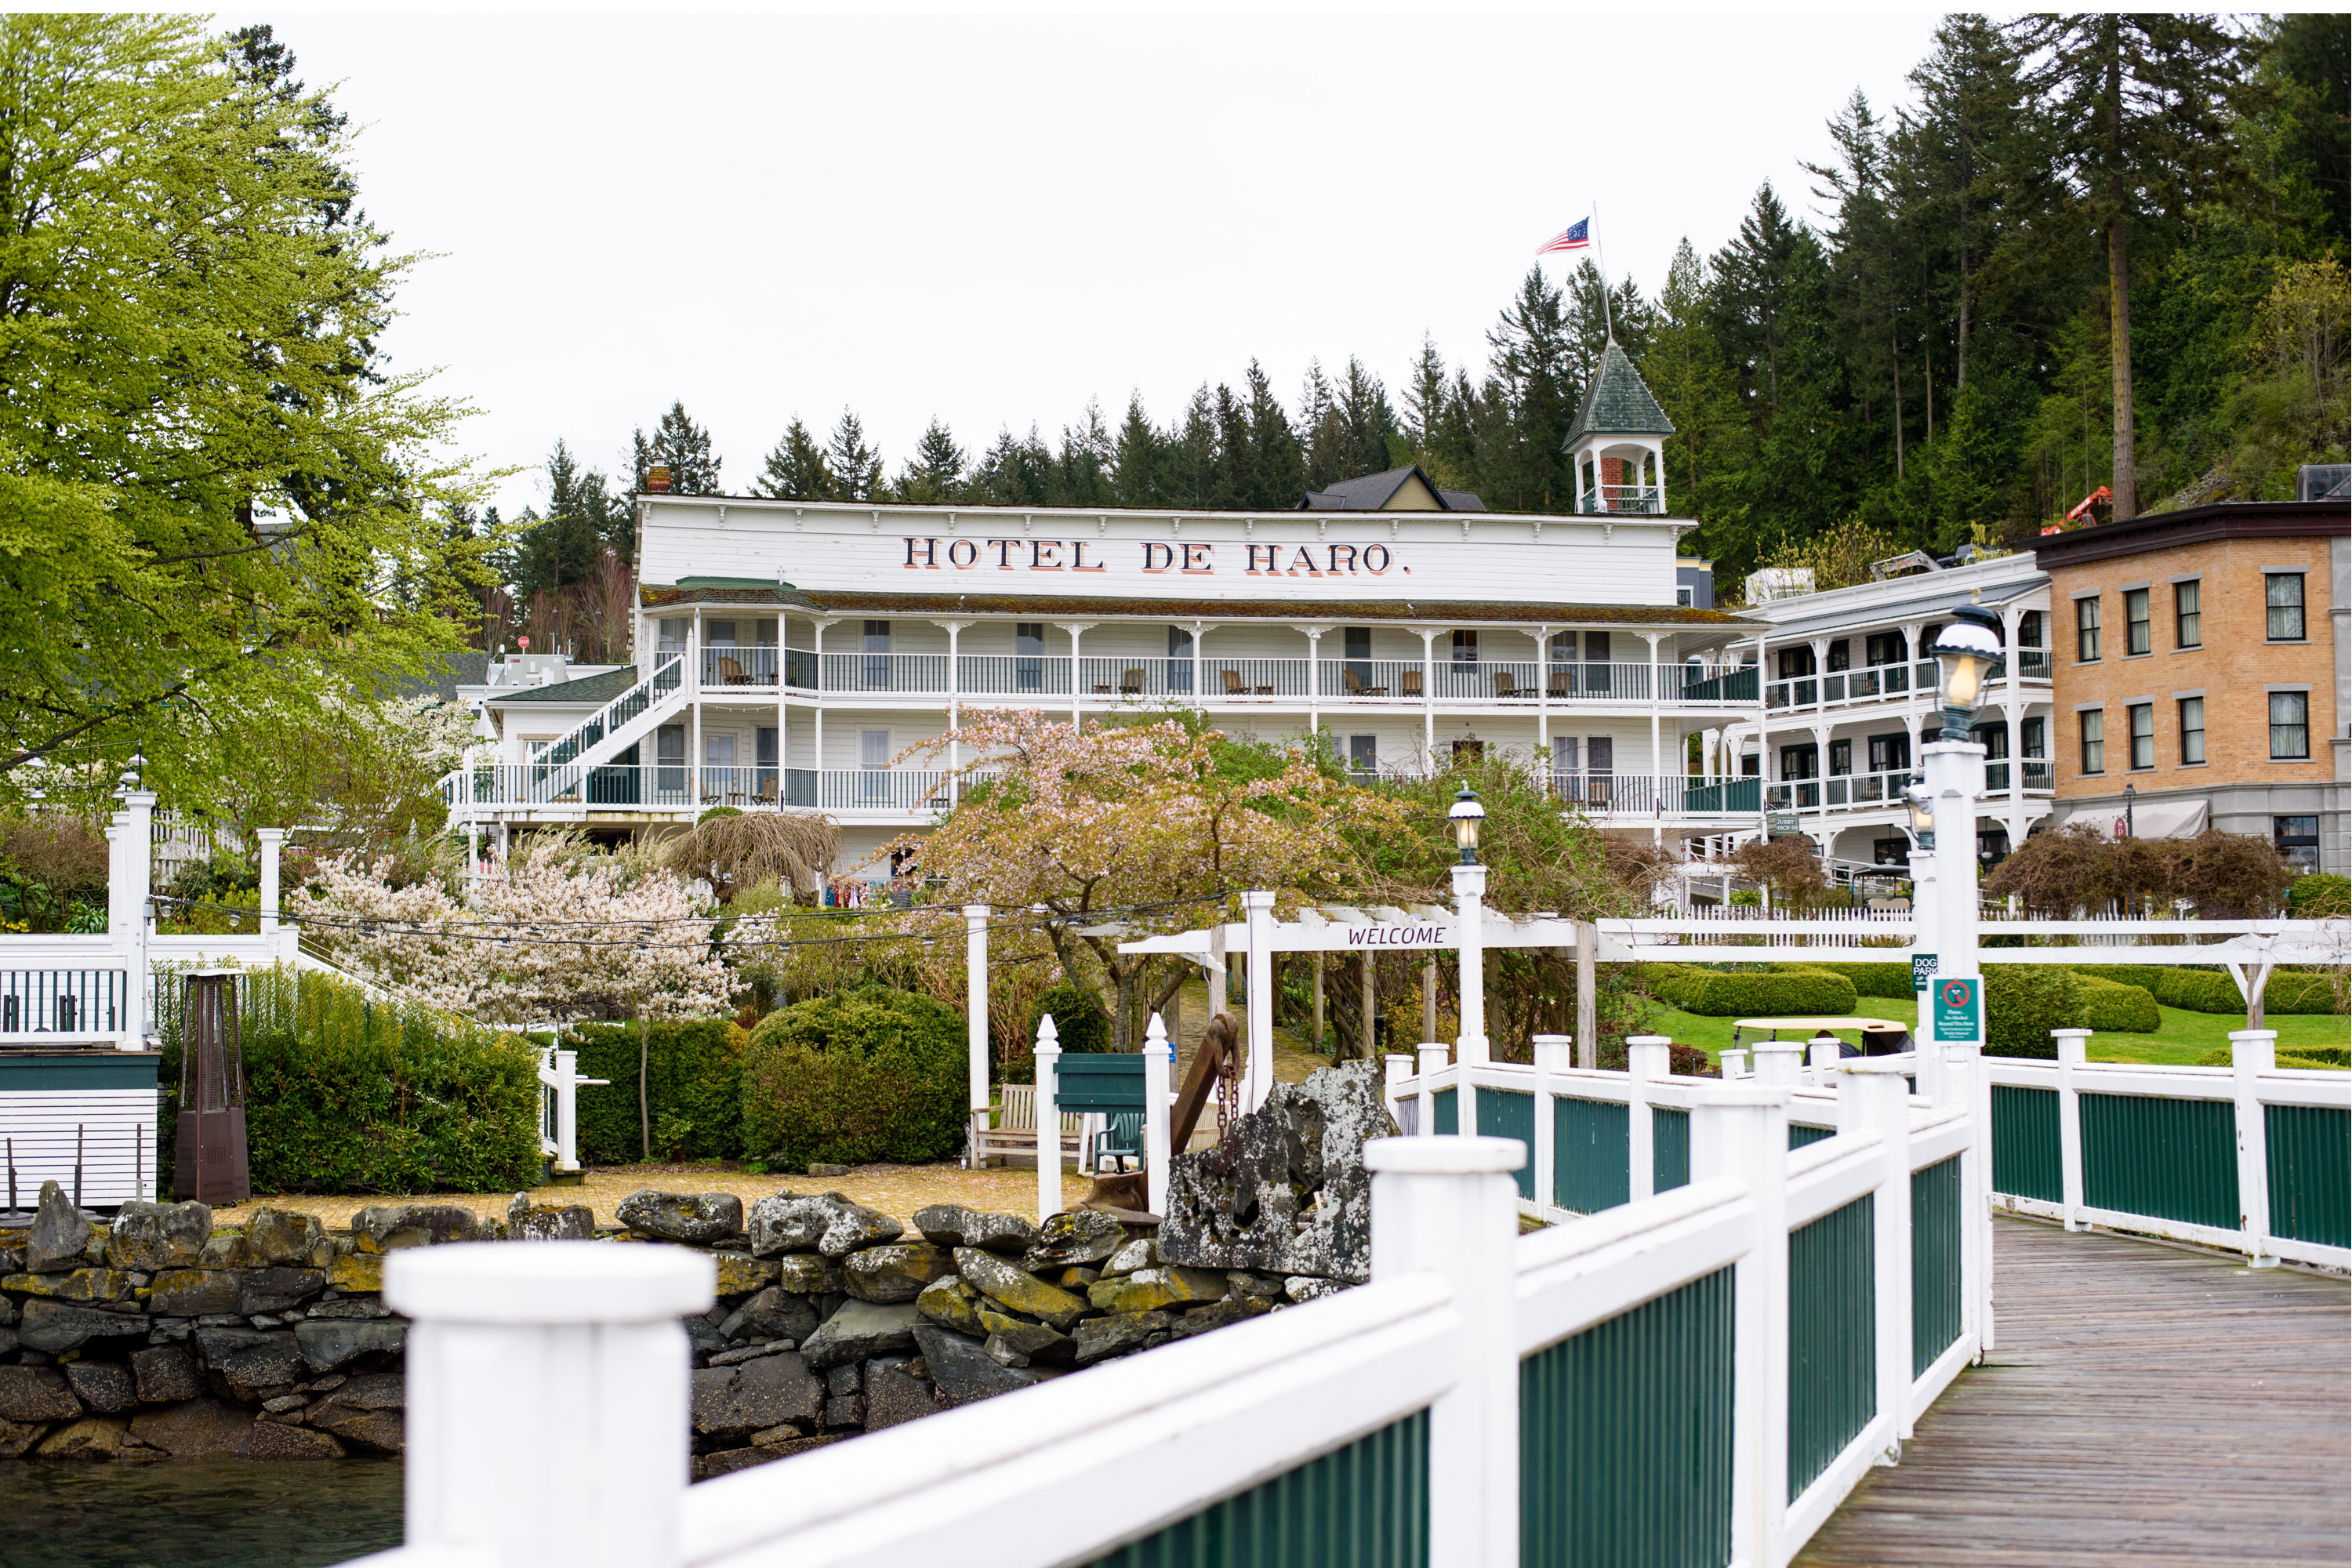 roche-harbor-wedding-photo-inspiration-pnw-island-wedding-venue